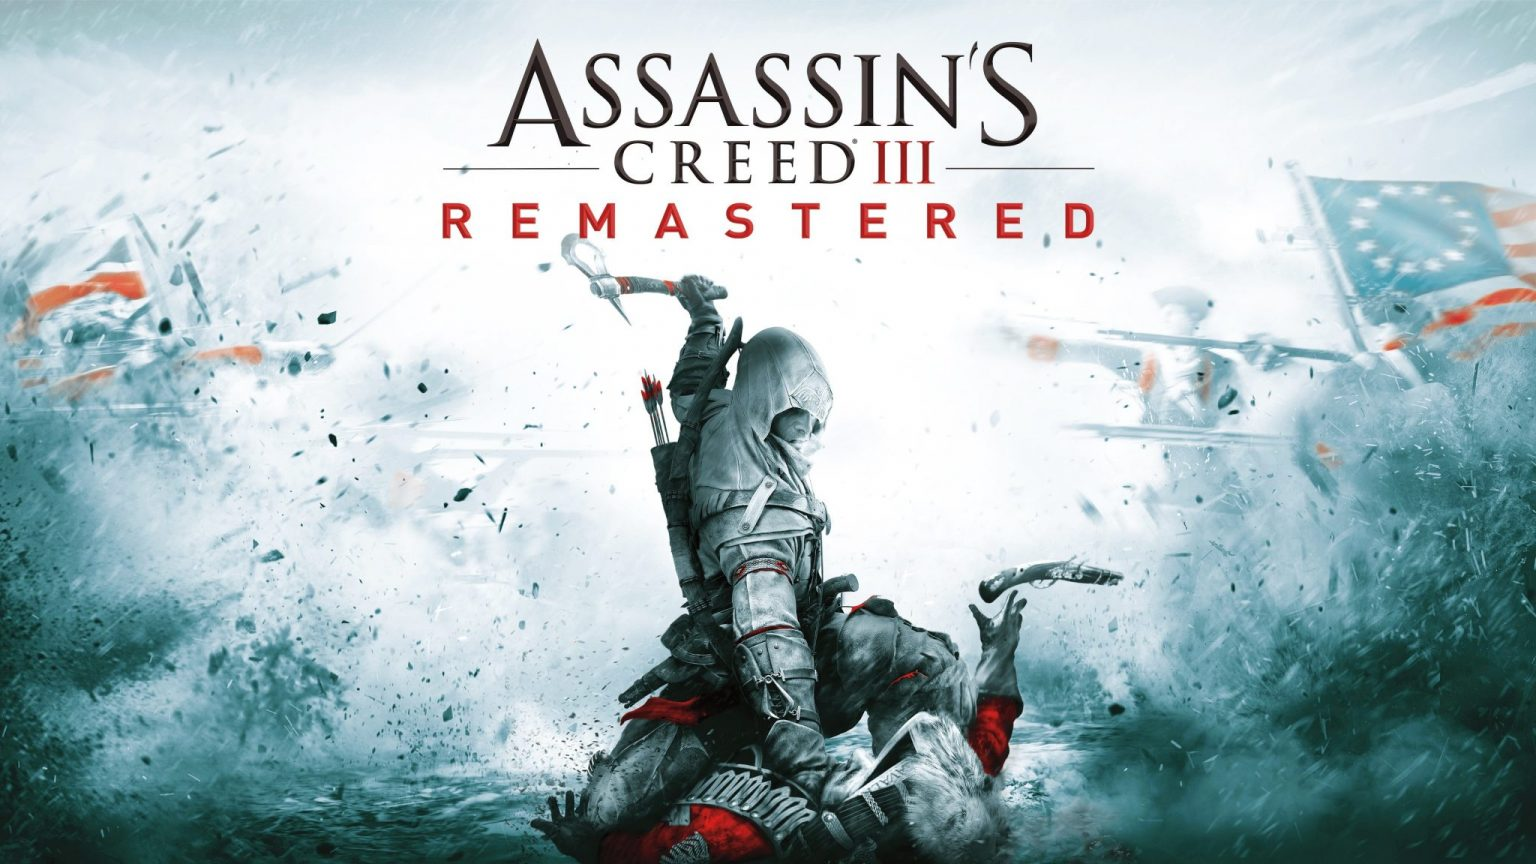 ASSASSINS CREED 3 Full Version Free Download